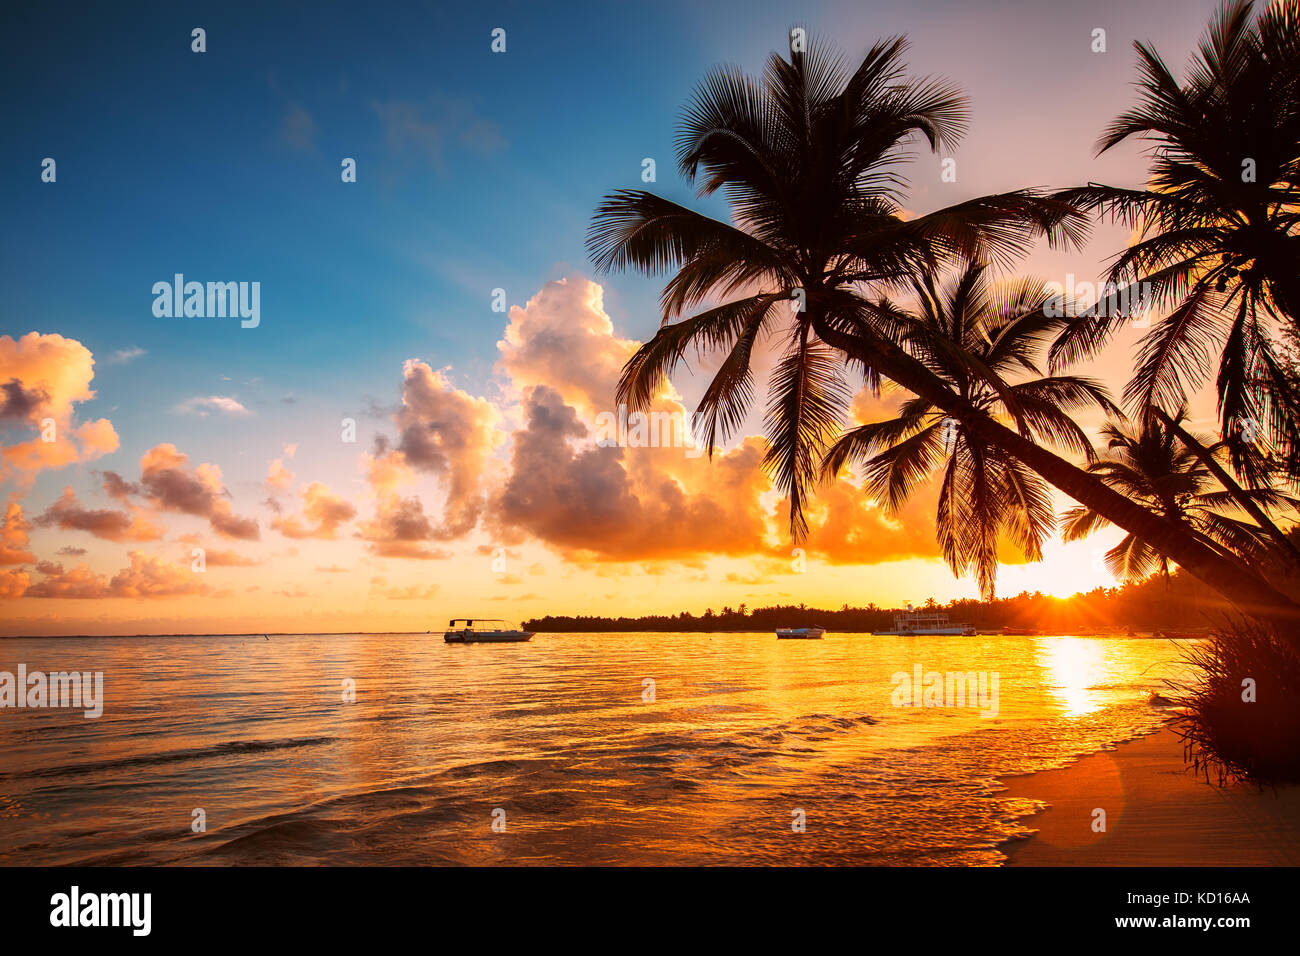 Palmtree silhouettes on the tropical beach, Dominican Republic - Stock Image